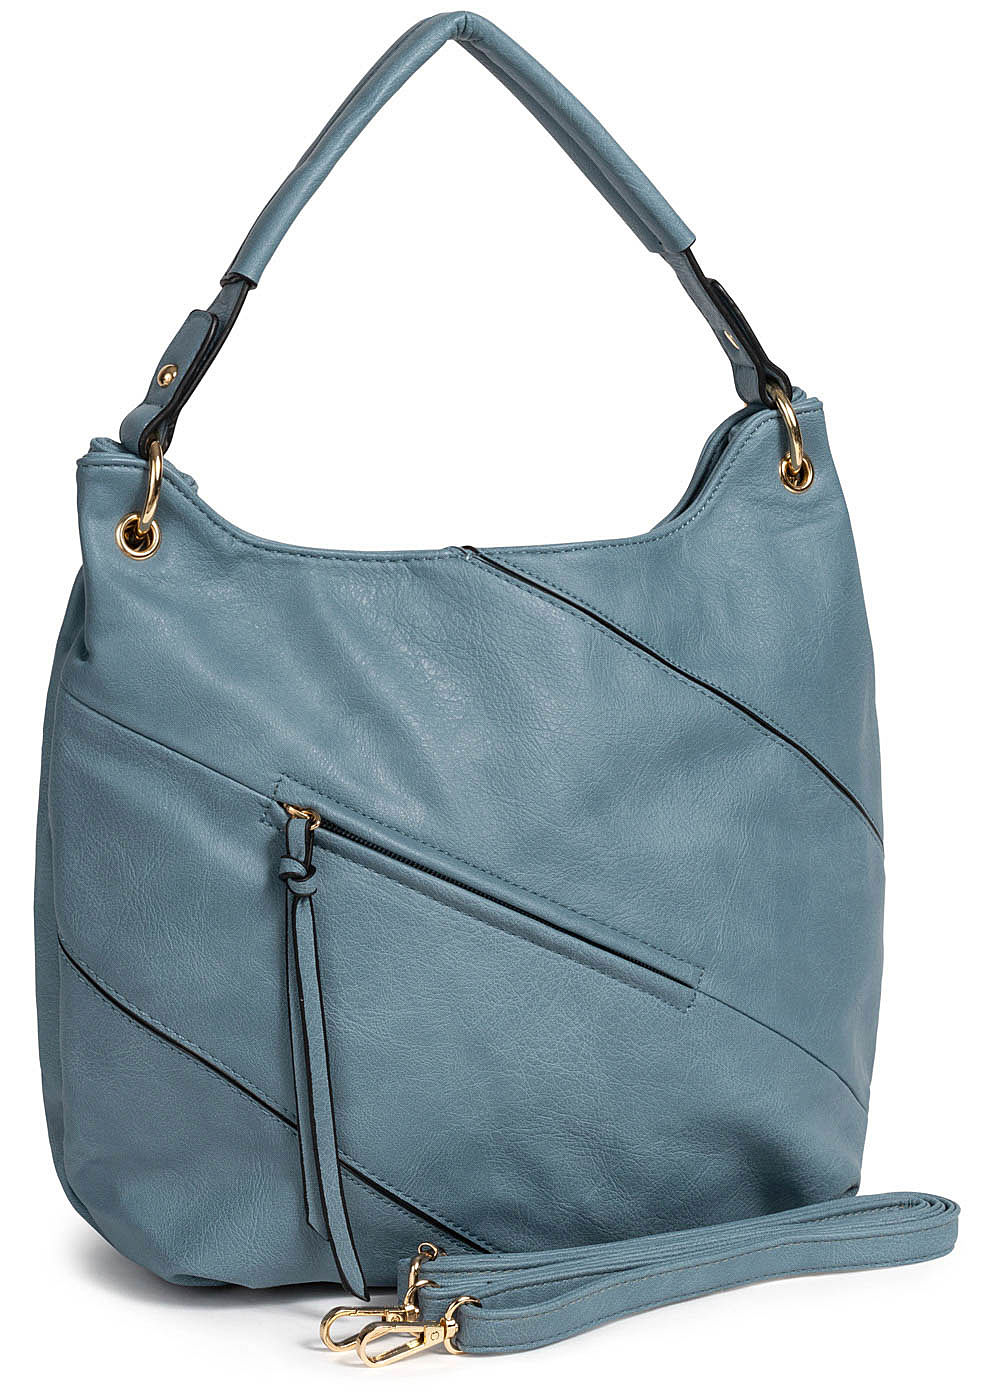 Styleboom Fashion Damen Tote Zip Bag hell blau - Art.-Nr.: 19062549-OS-BL